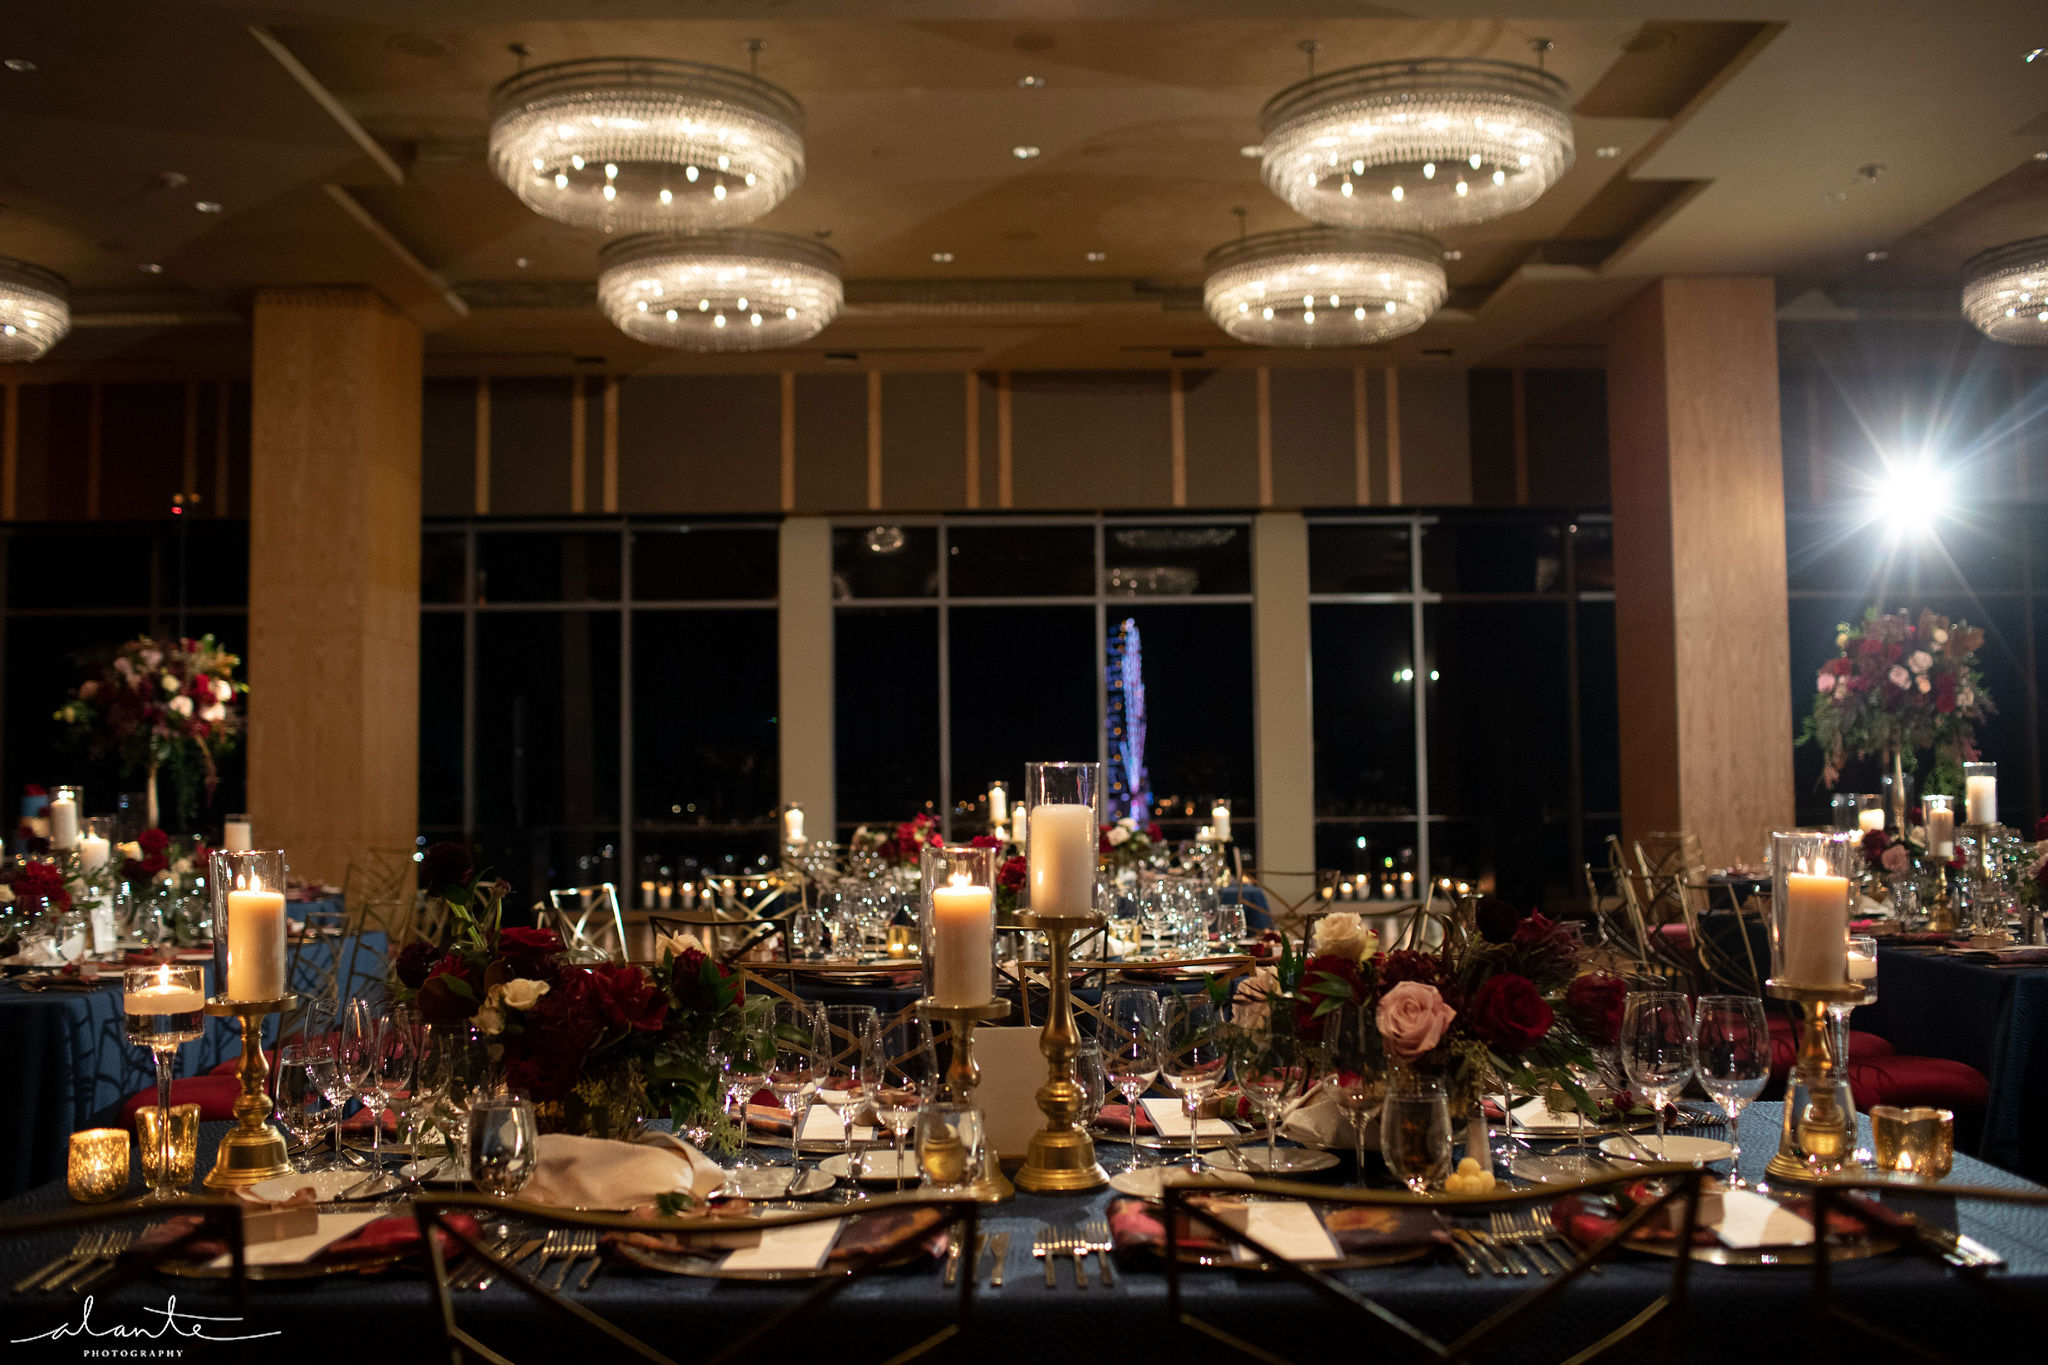 Winter ballroom wedding reception with red and blush floral centerpieces.